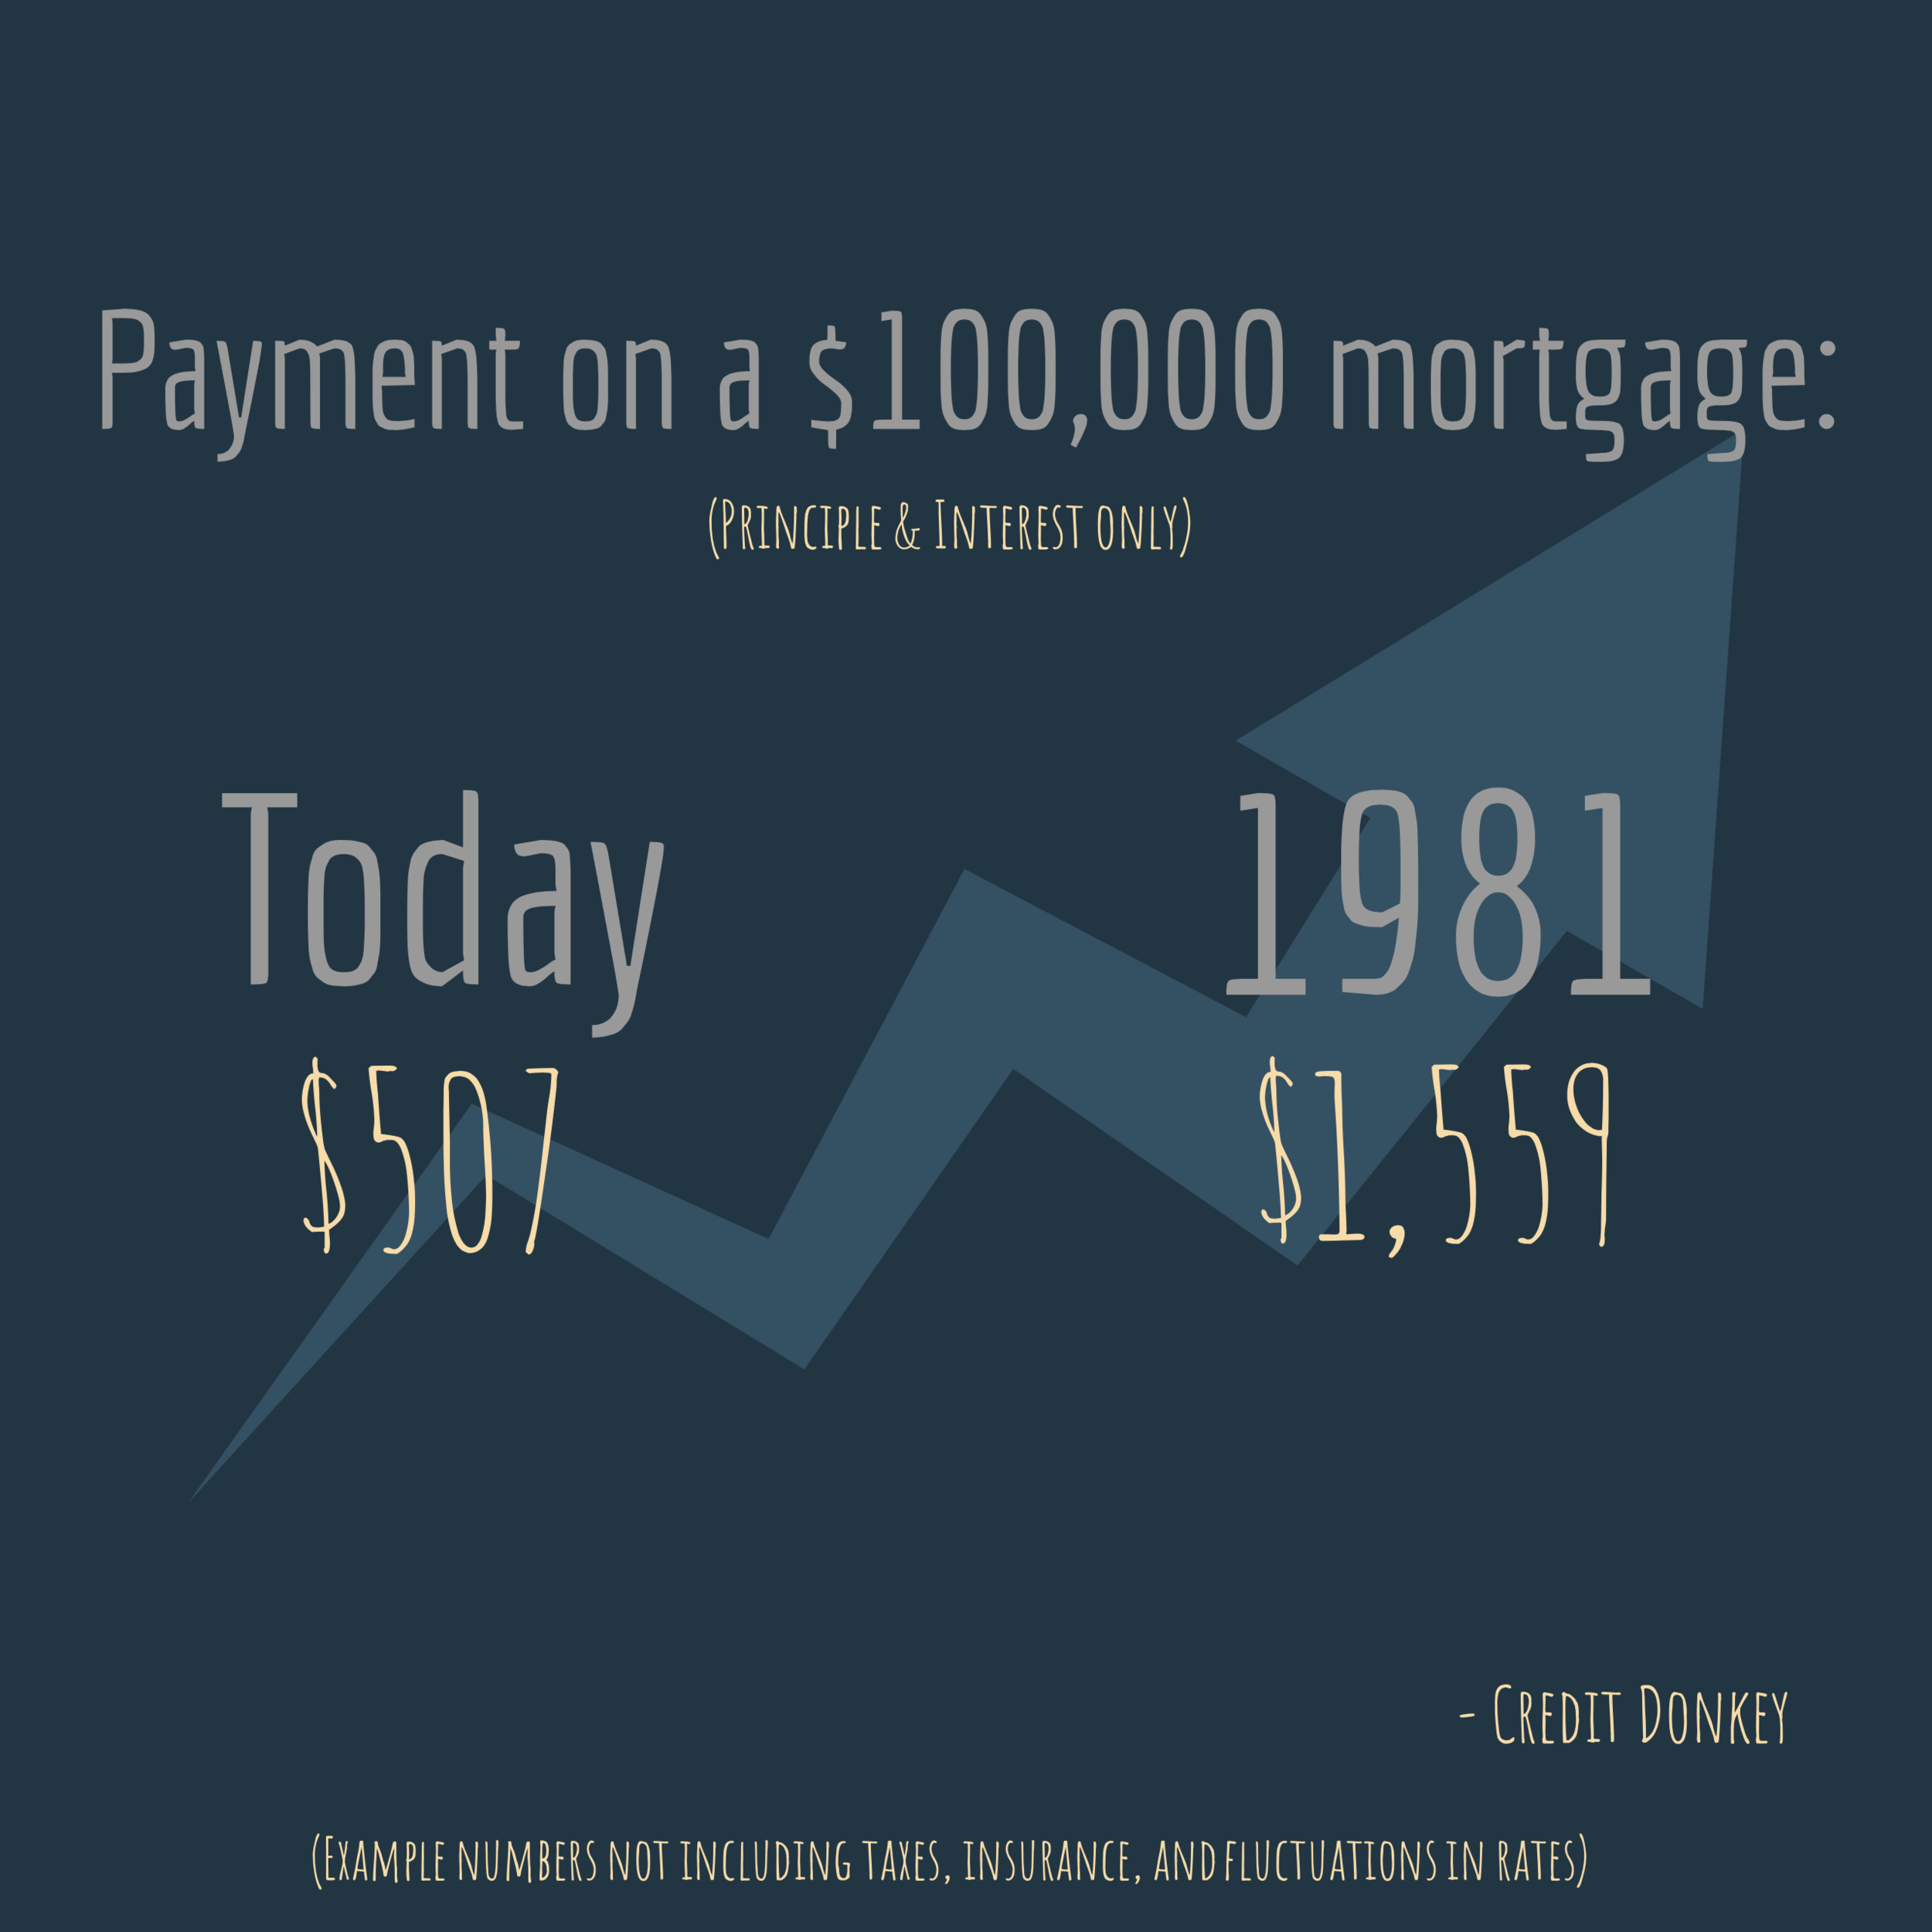 example mortgage to put into perspective.png